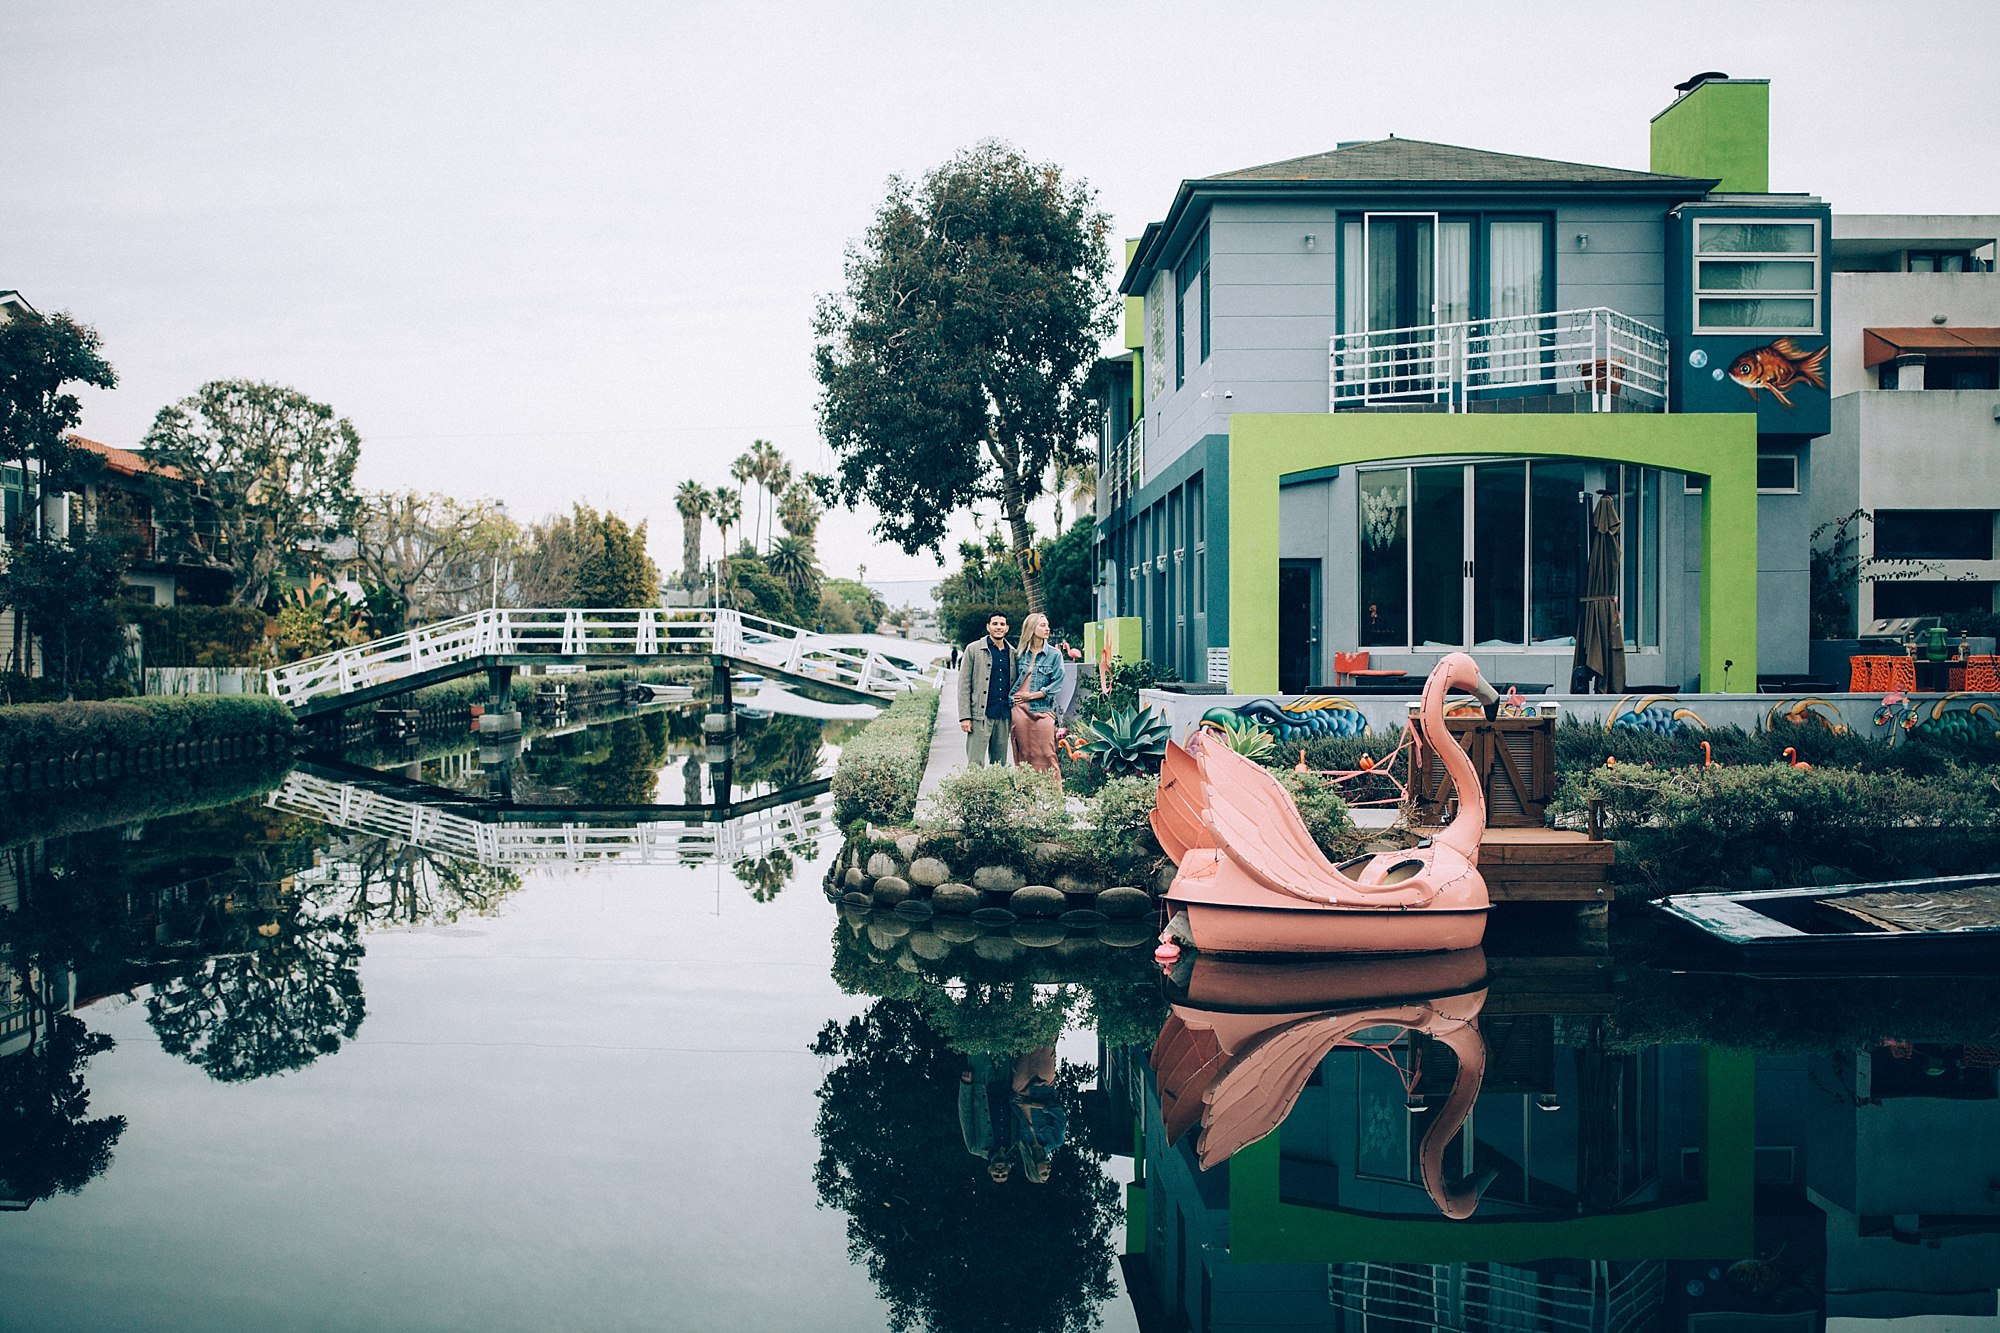 Courtney and Danny's Venice Canals Engagement Shoot